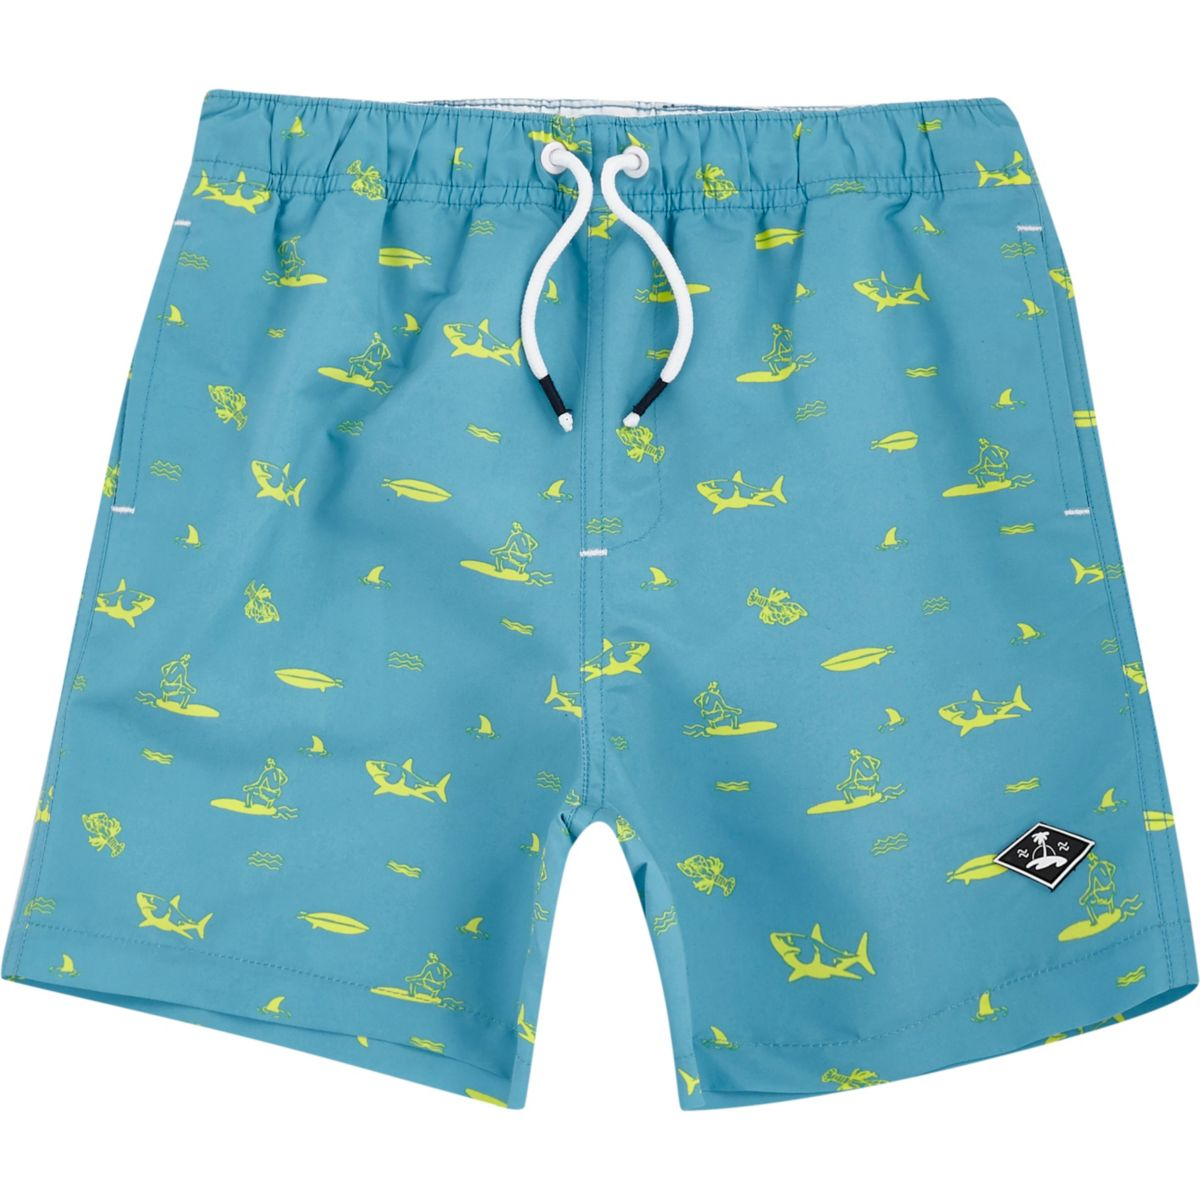 Boys blue shark print swim shorts